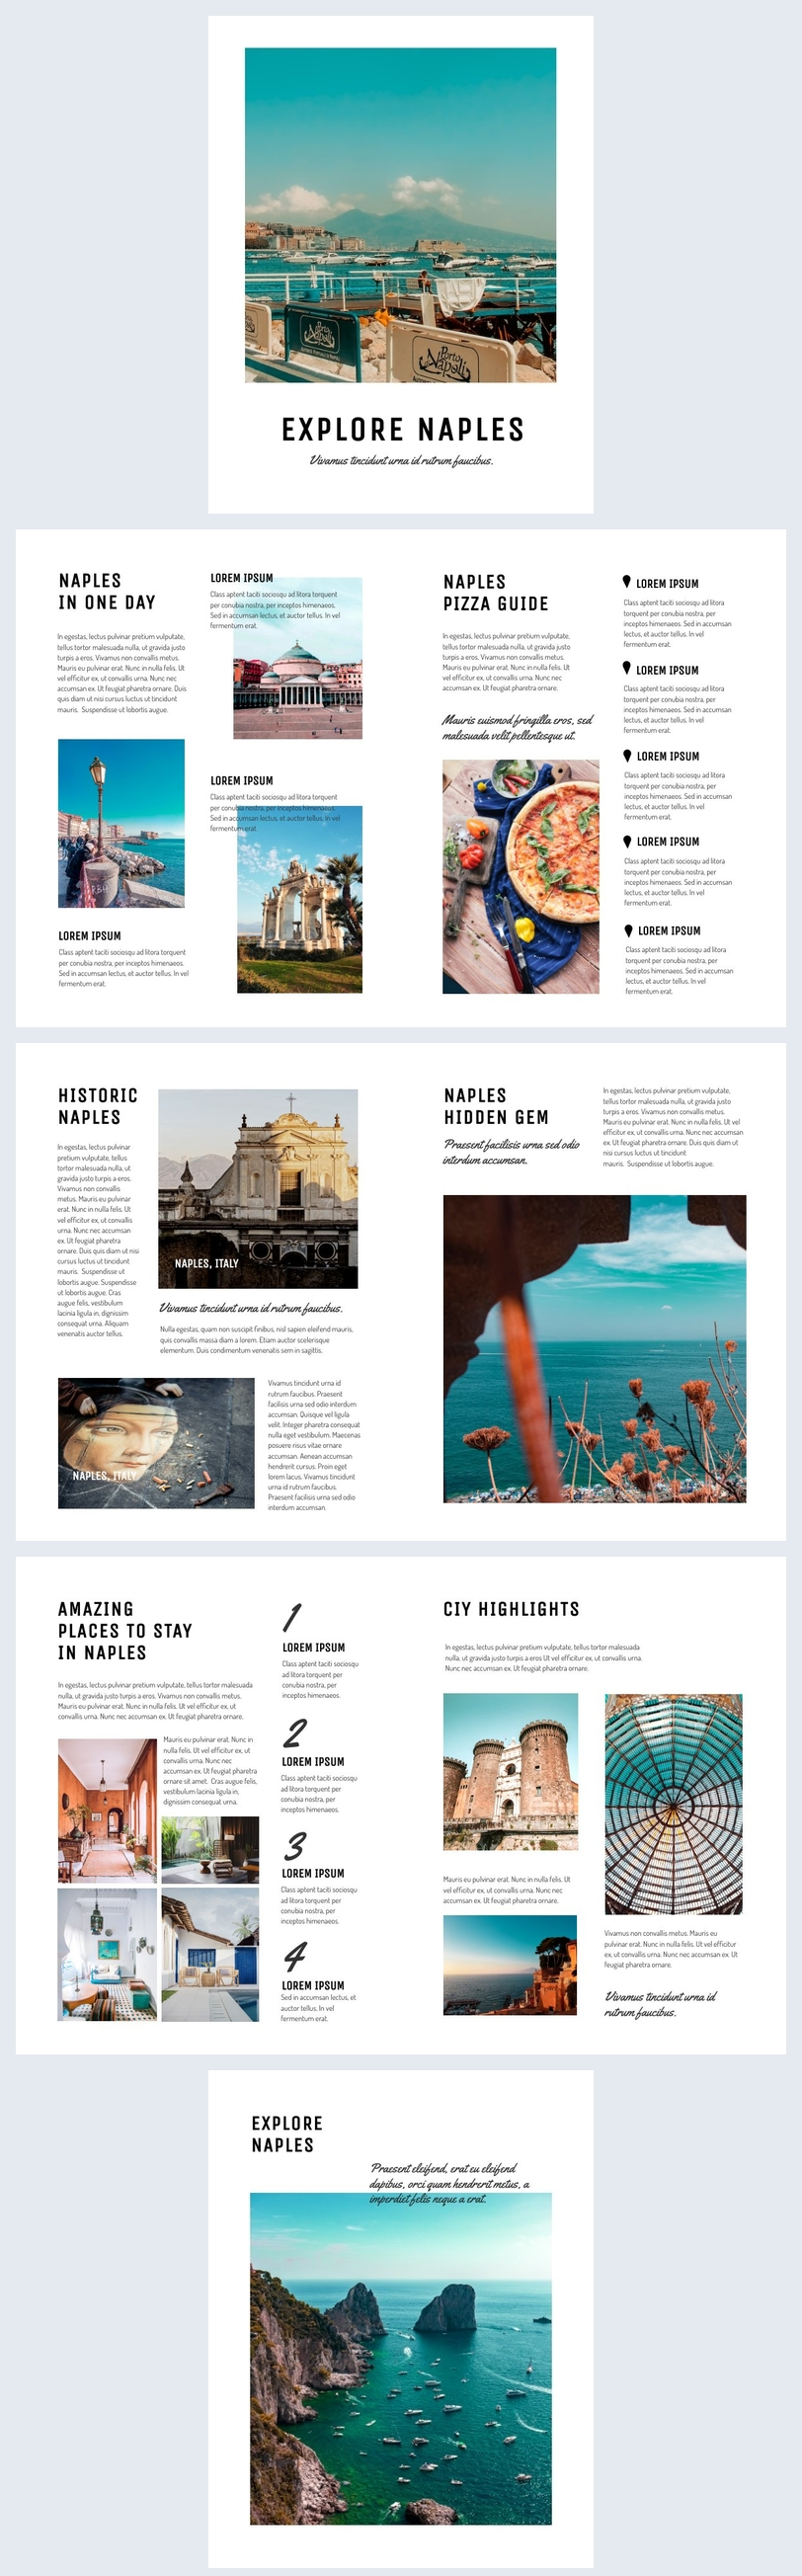 Customizable Travel Guide Book Design